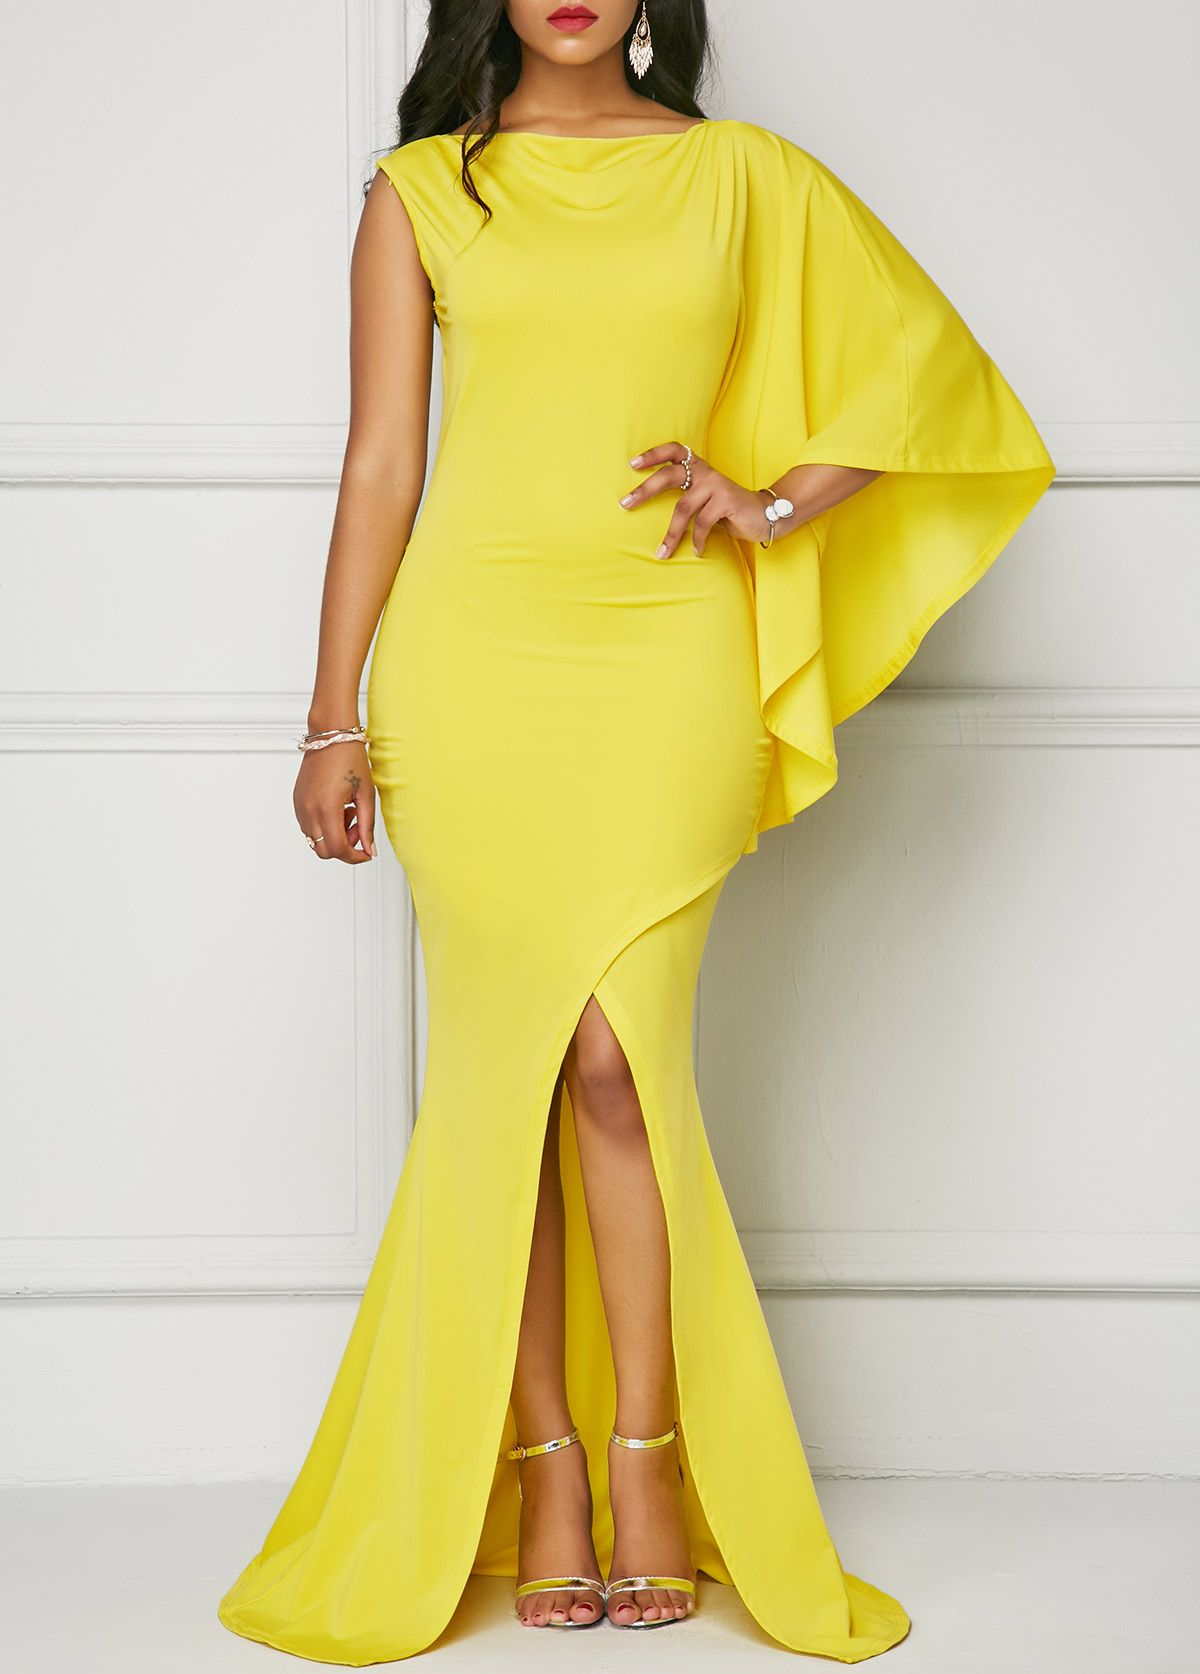 b0c31533686b2 Yellow One Sleeve Front Slit Maxi Dress | Rosewe.com - USD $33.60 ...